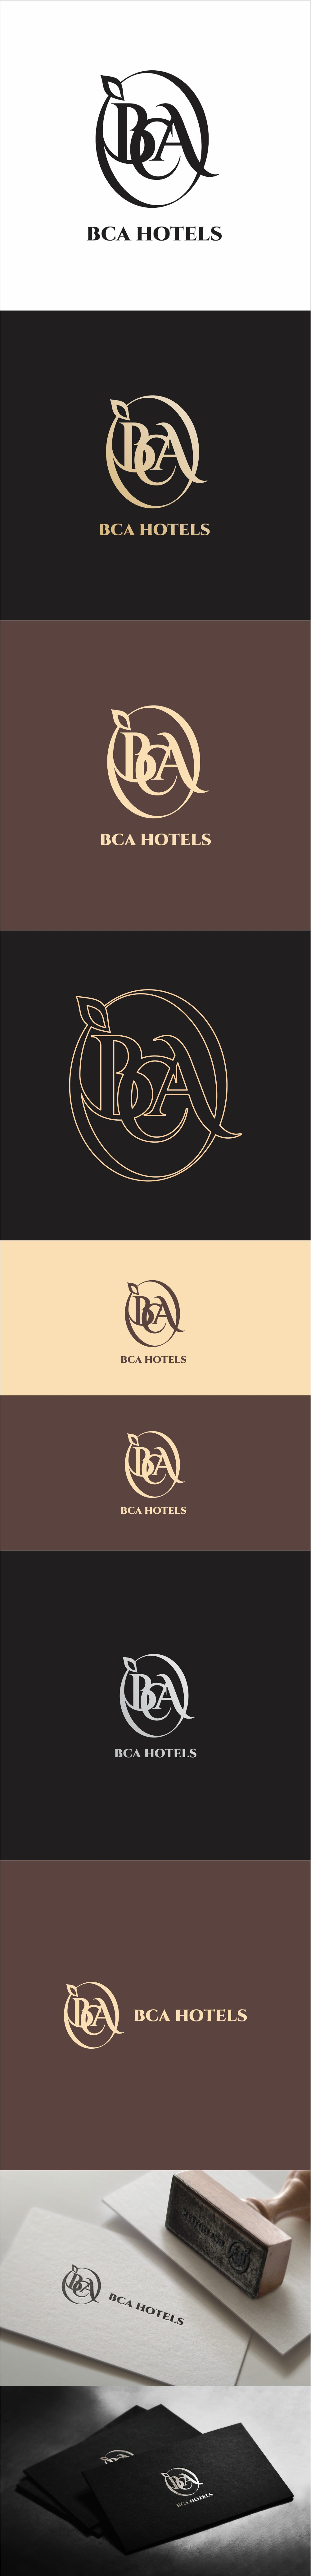 Design a modern logo which will be visible to top hotel companies including Marriott and Hilton